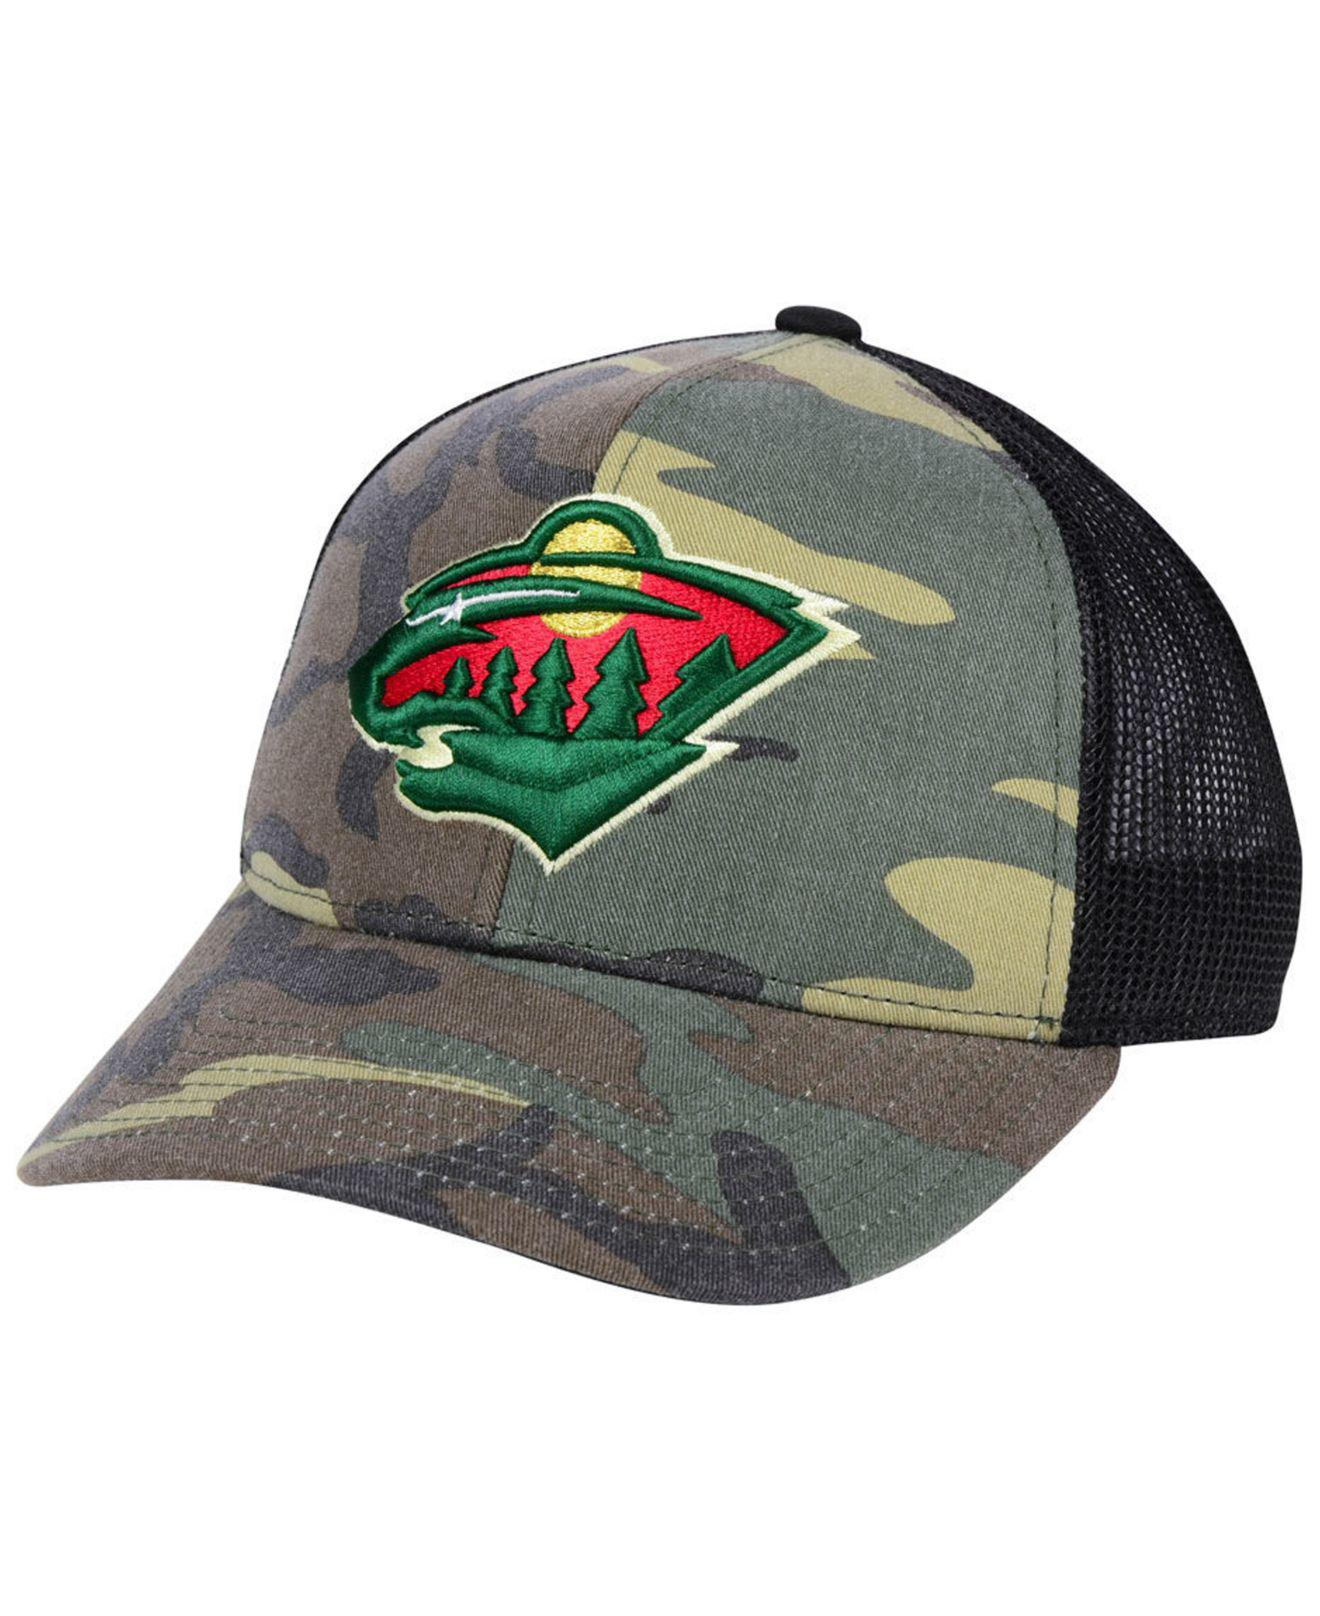 9307591955ff6 Adidas - Green Minnesota Wild Camo Trucker Cap for Men - Lyst. View  fullscreen